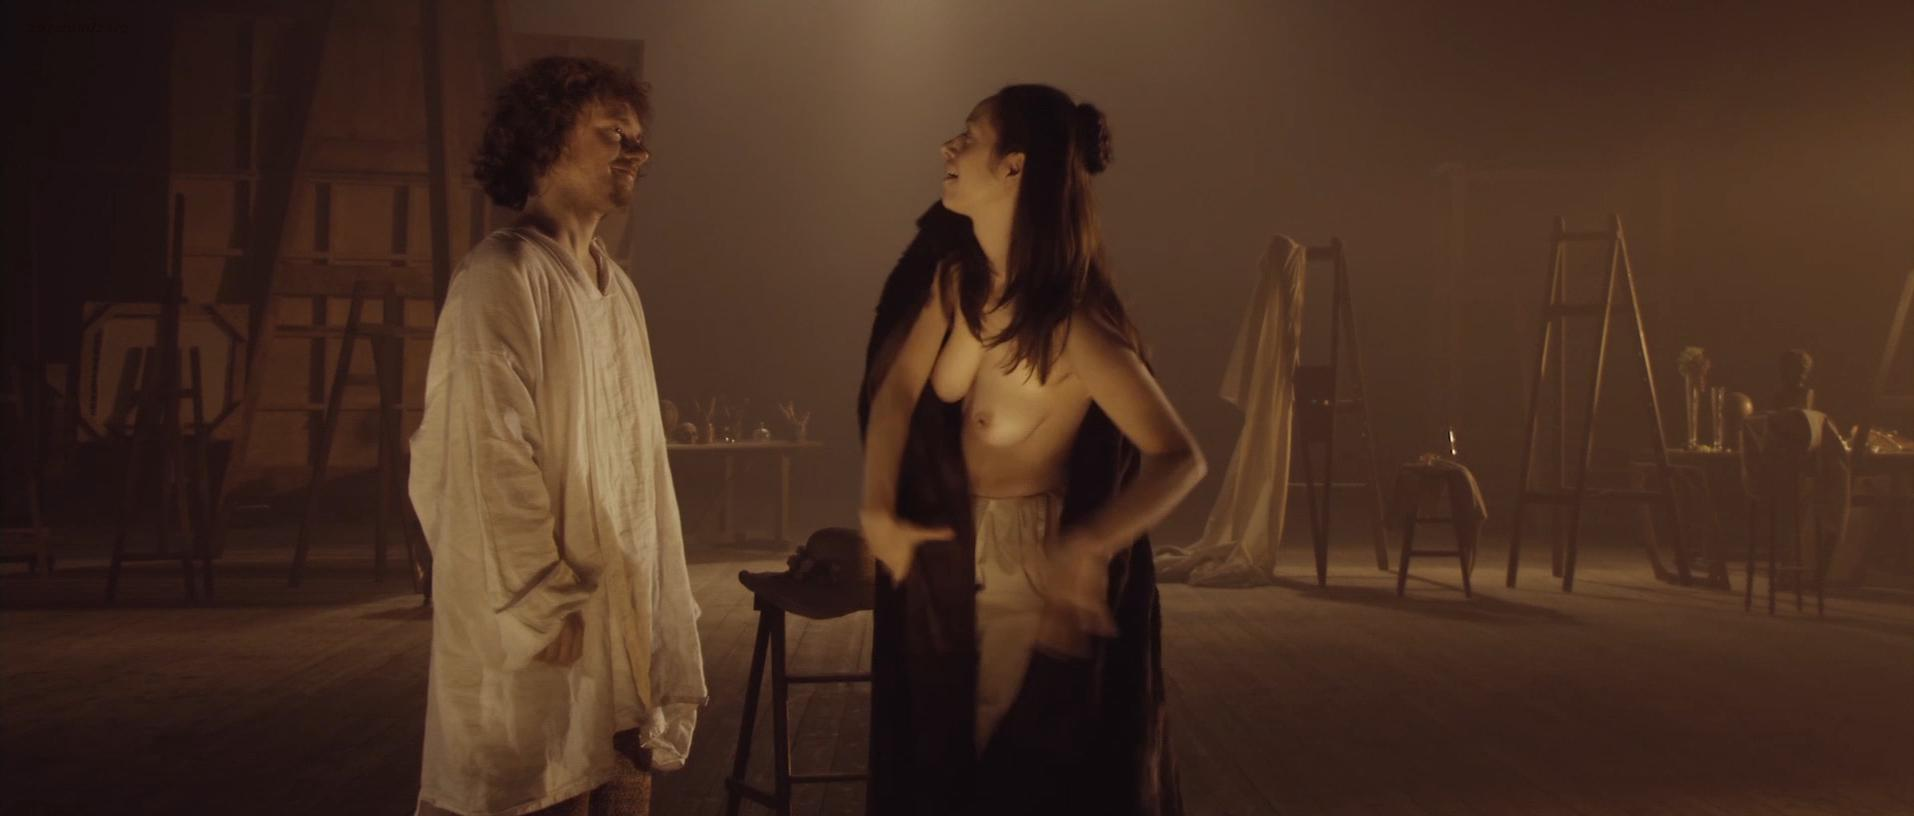 Emily Holmes nude, Jodhi May nude, Fiona O'Shaughnessy nude - Nightwatching (2007)